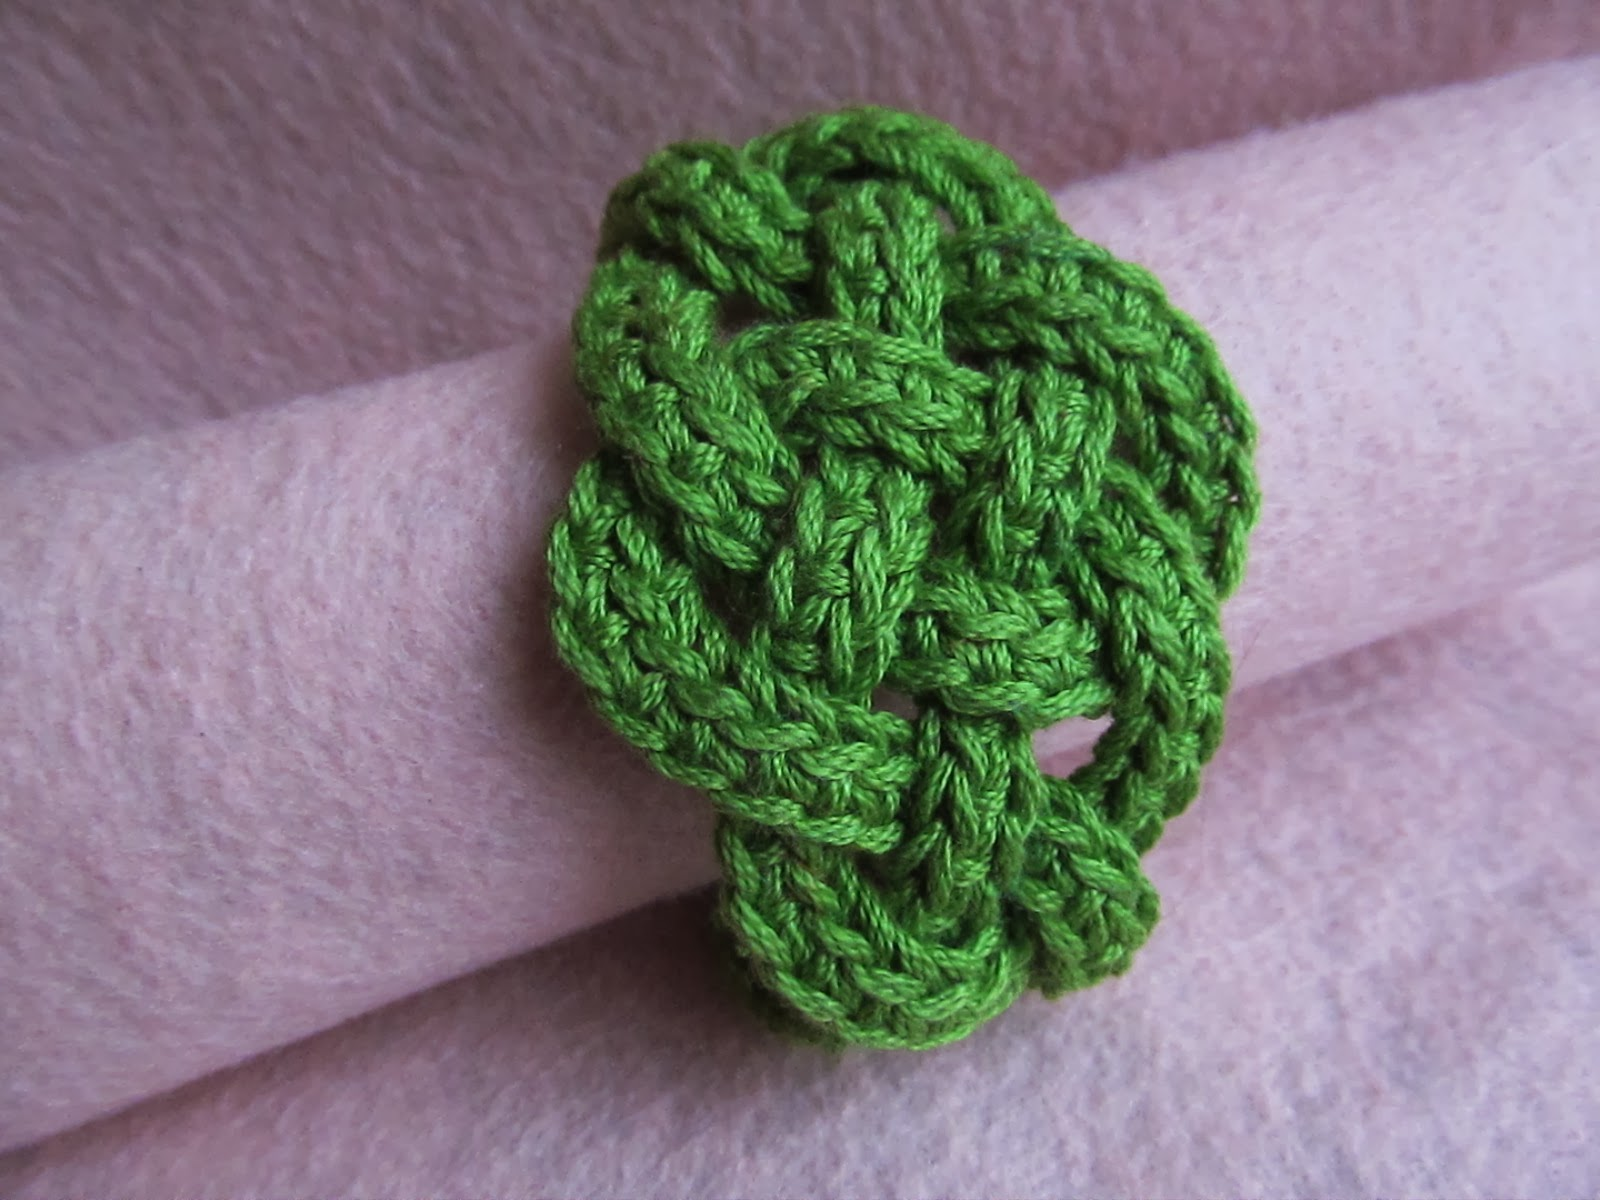 Crochet Knot : ... knot crochet for the 2014 crochetville national crochet month blog